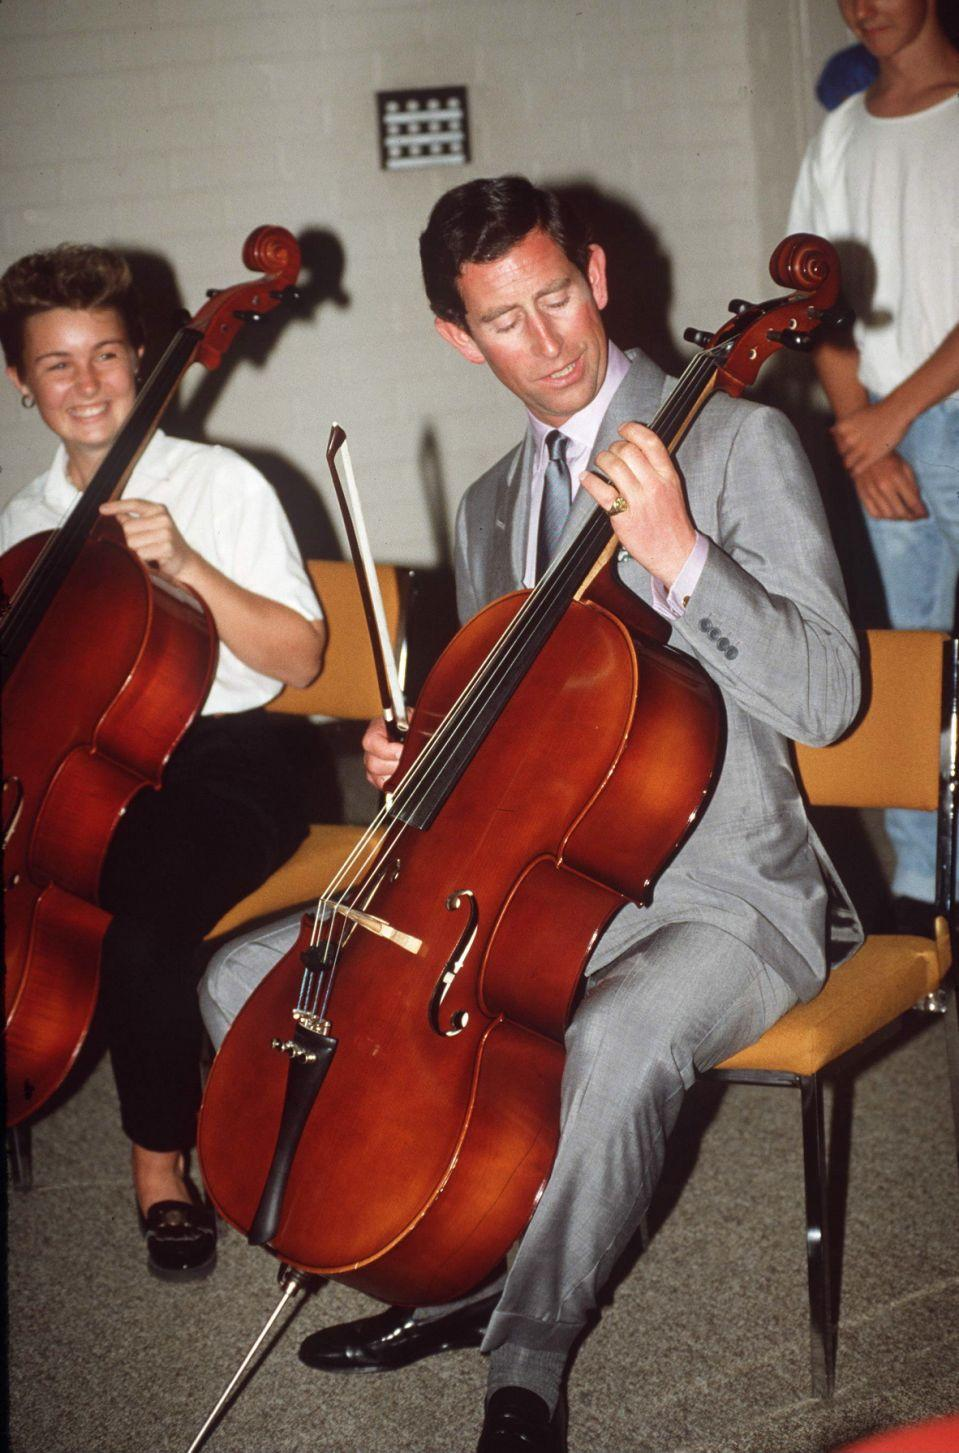 Der Prinz von Wales versuchte sich im Victorian College of Arts in Melbourne am Cello. Foto: Getty Images.